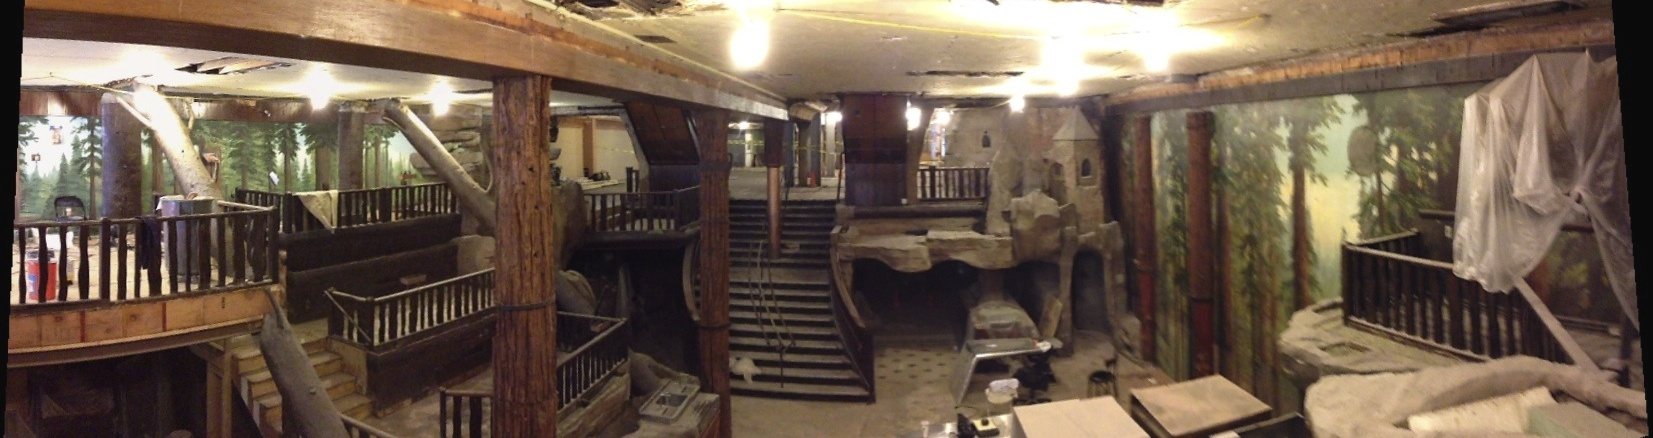 Clifton's Cafeteria Renovation